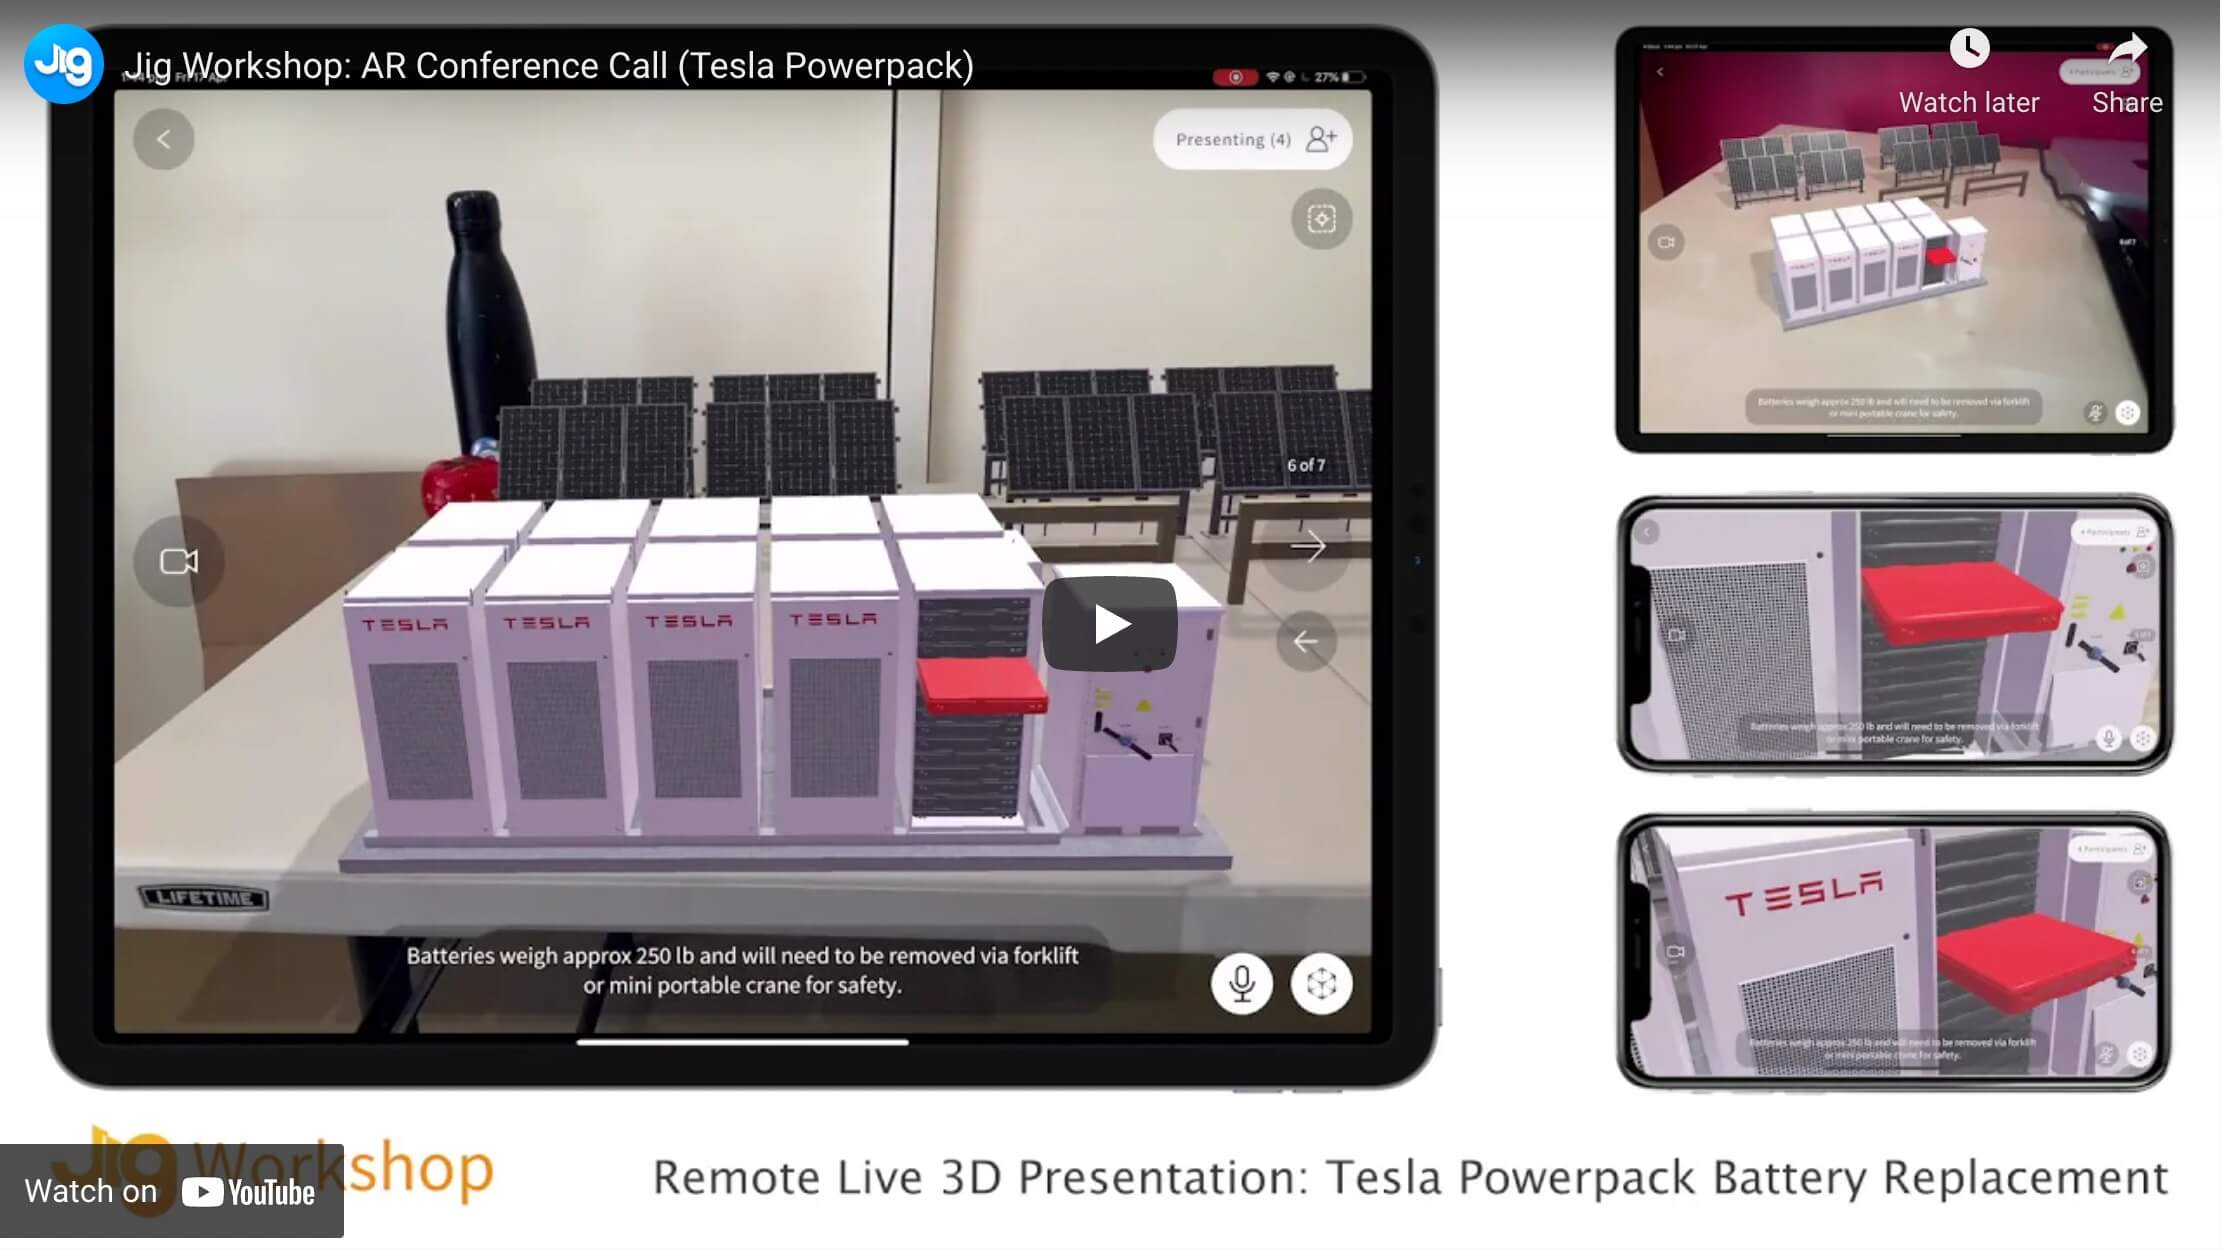 Remote augmented reality presentations are now available